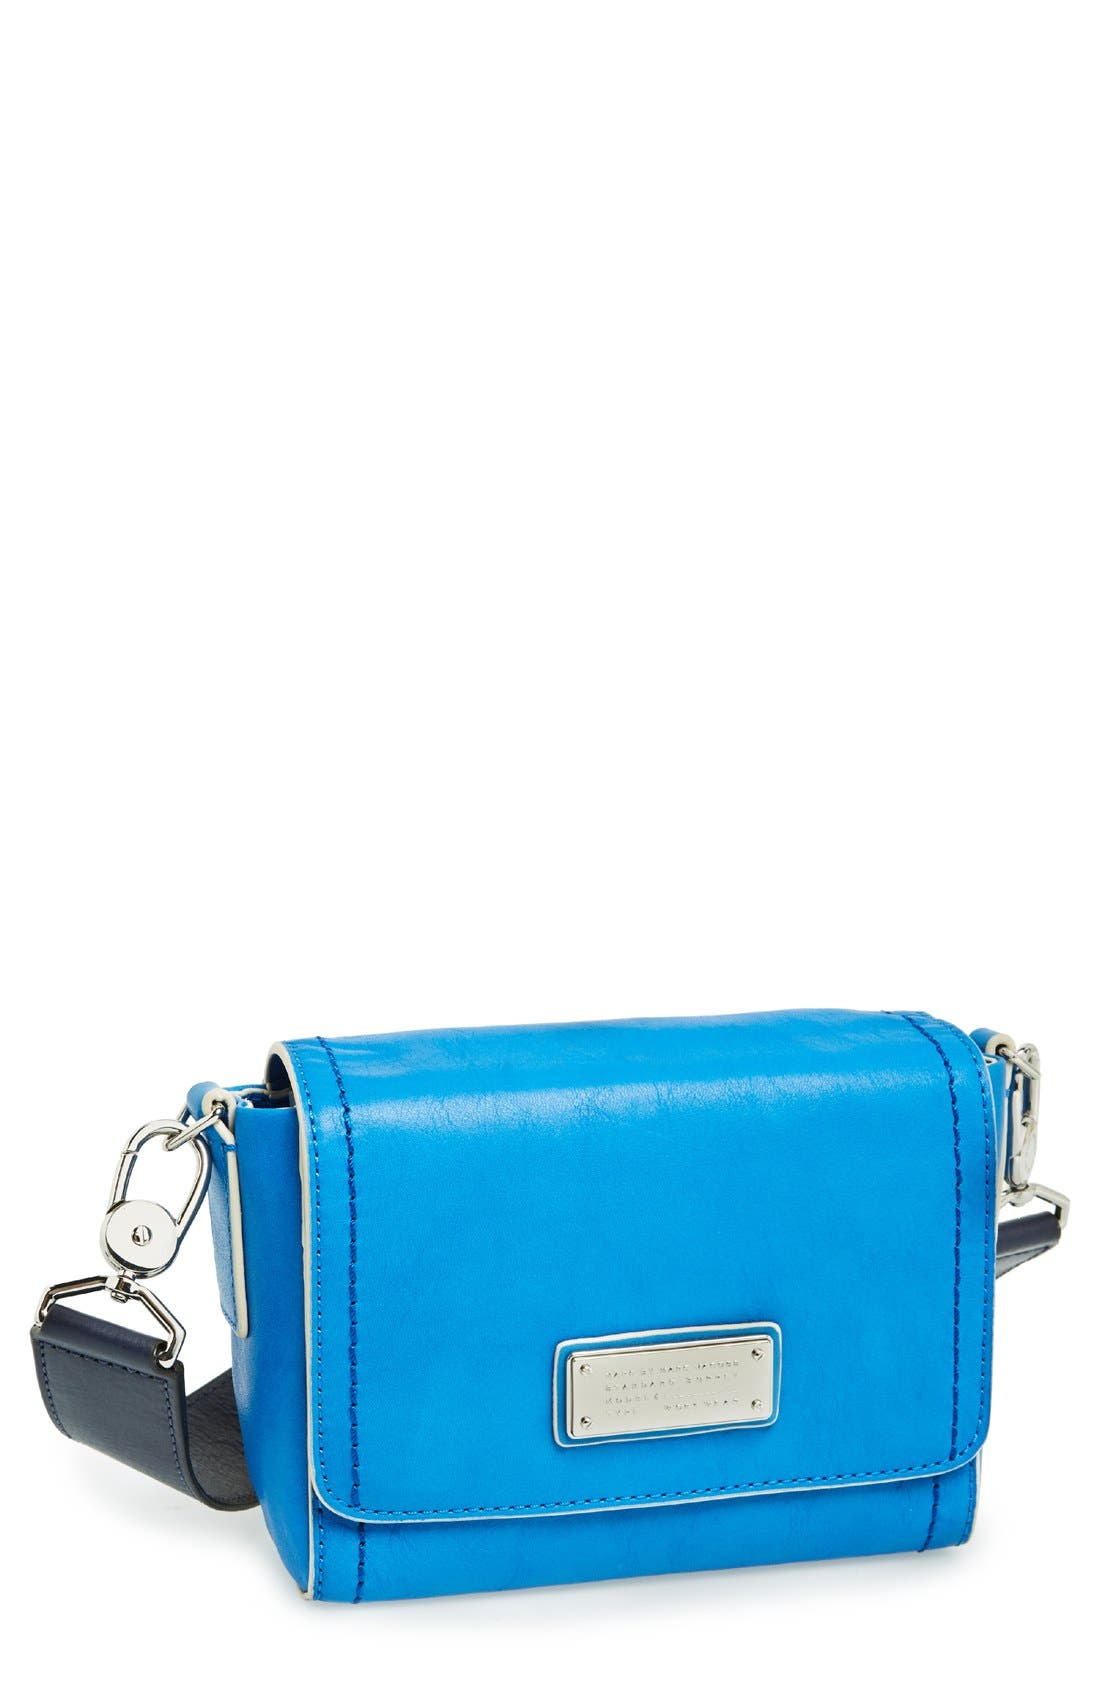 Alternate Image 1 Selected - MARC BY MARC JACOBS 'Mility Utility - Sadie X-Body' Italian Leather Crossbody Bag